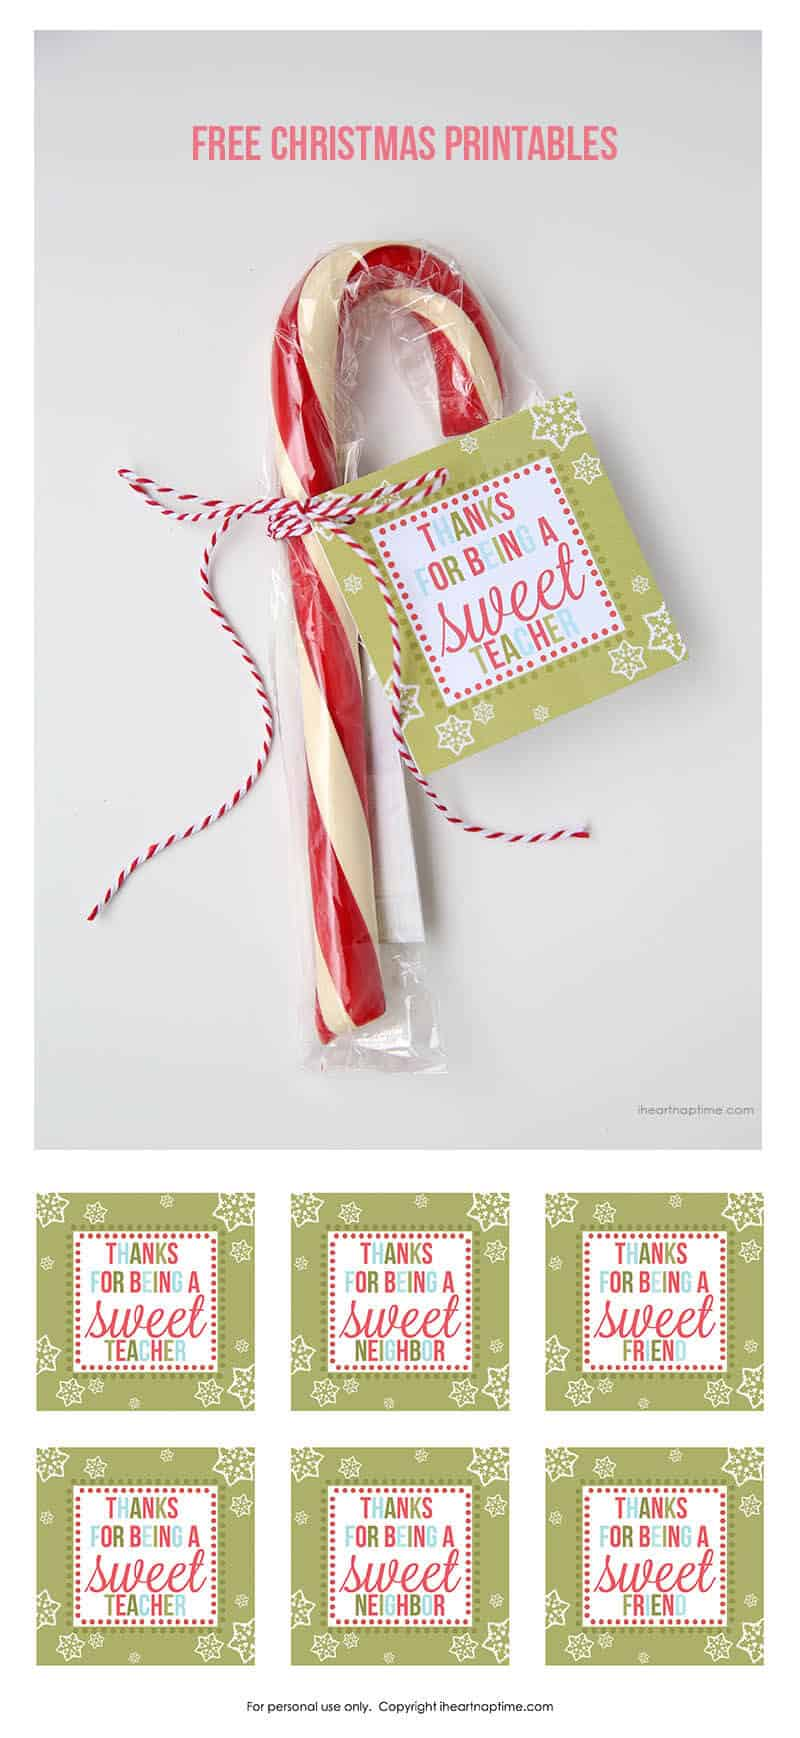 It's just an image of Playful Free Christmas Printable